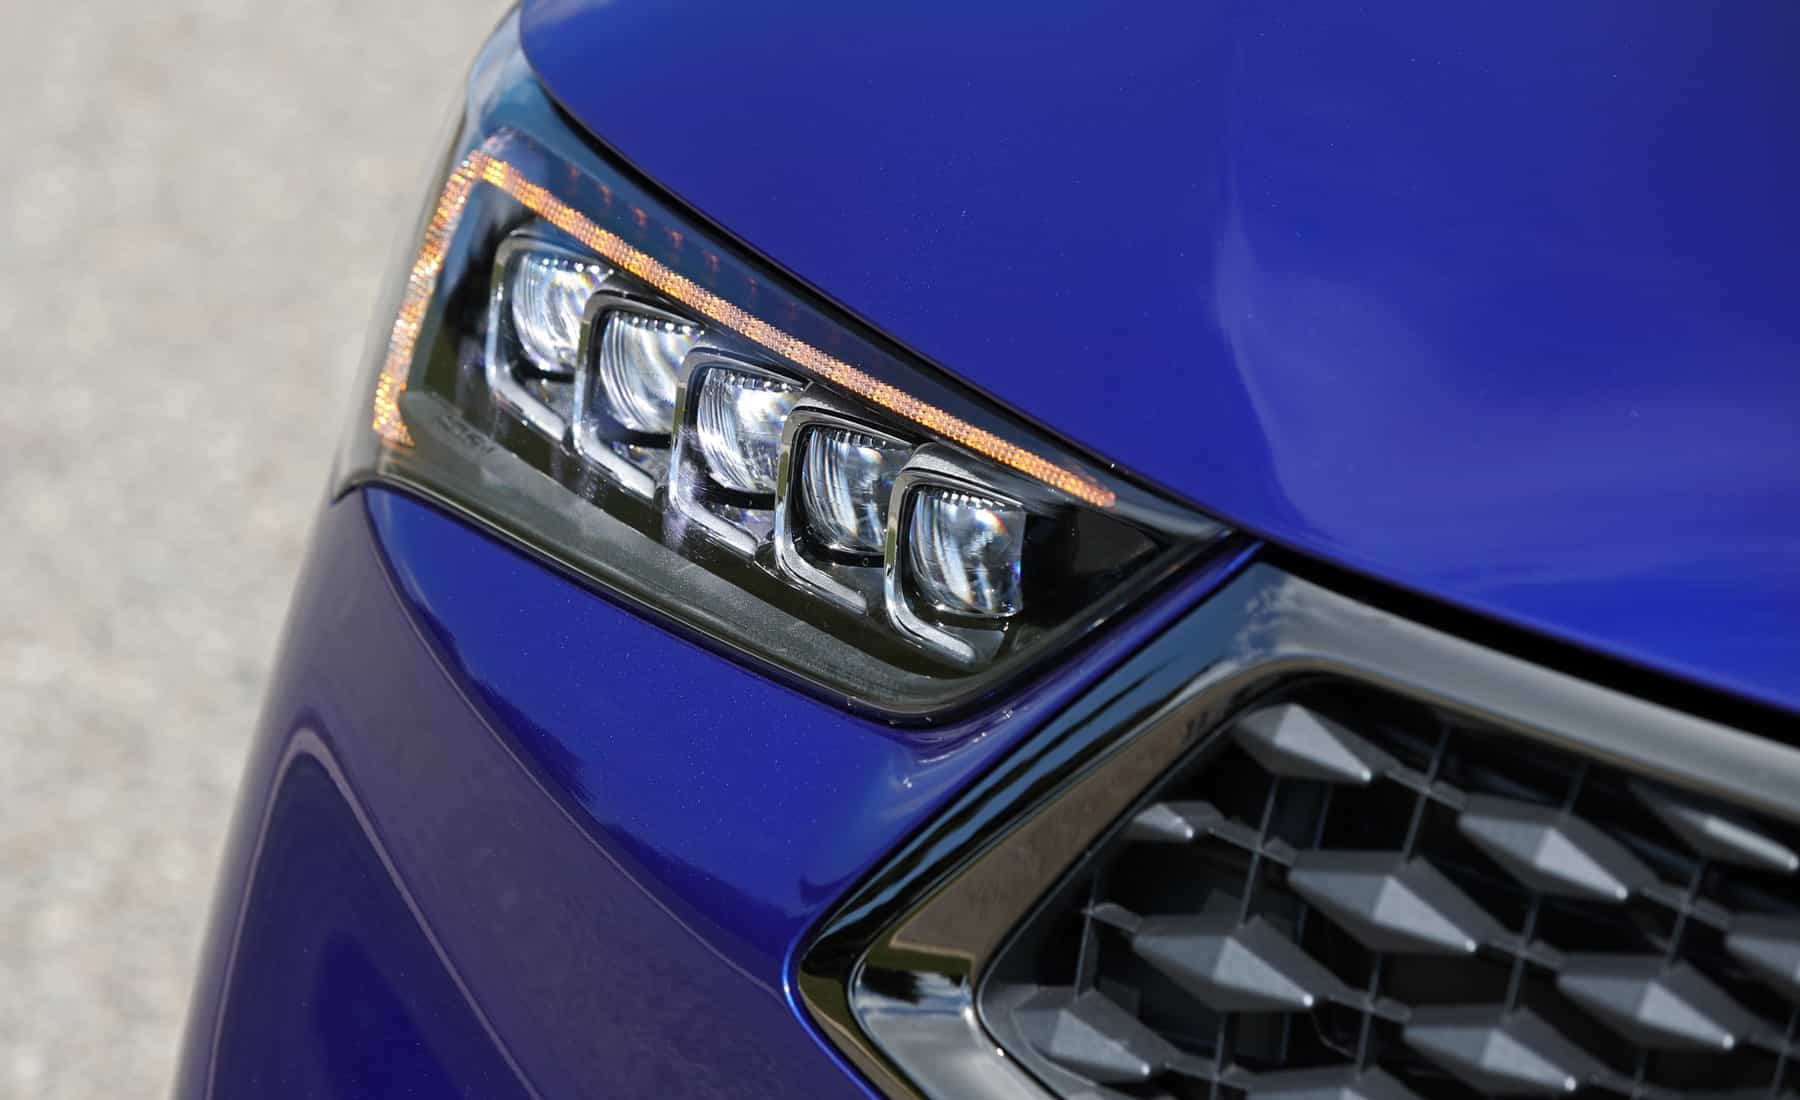 2018 Acura TLX Exterior View Headlight (Photo 40 of 46)